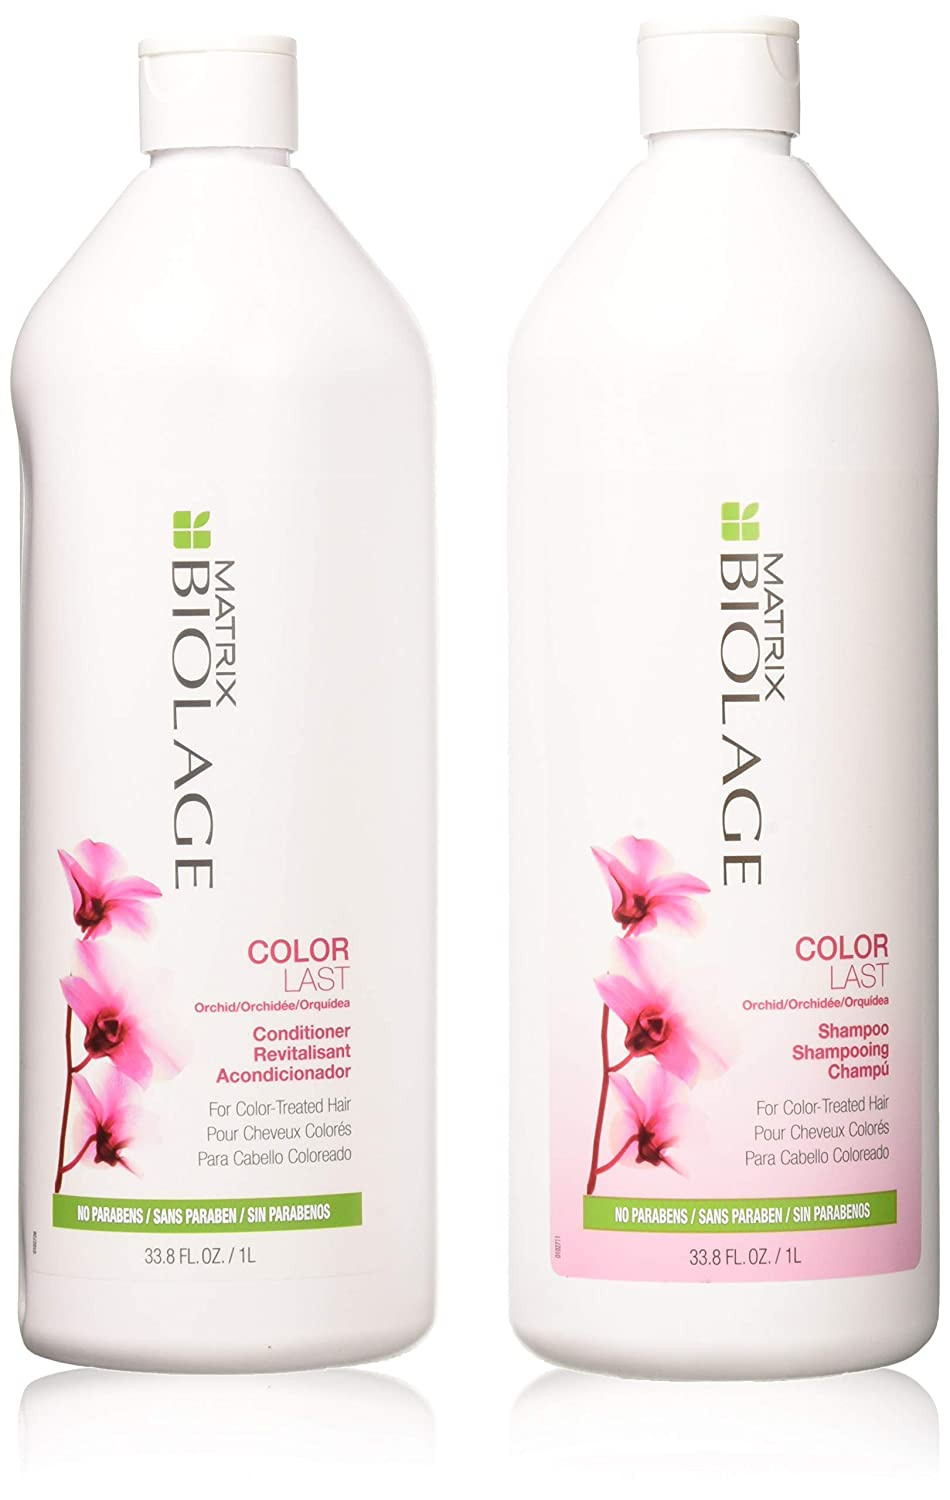 Biolage Colorlast Shampoo & Conditioner Liter Duo, 33.8 oz matrix 885364623115